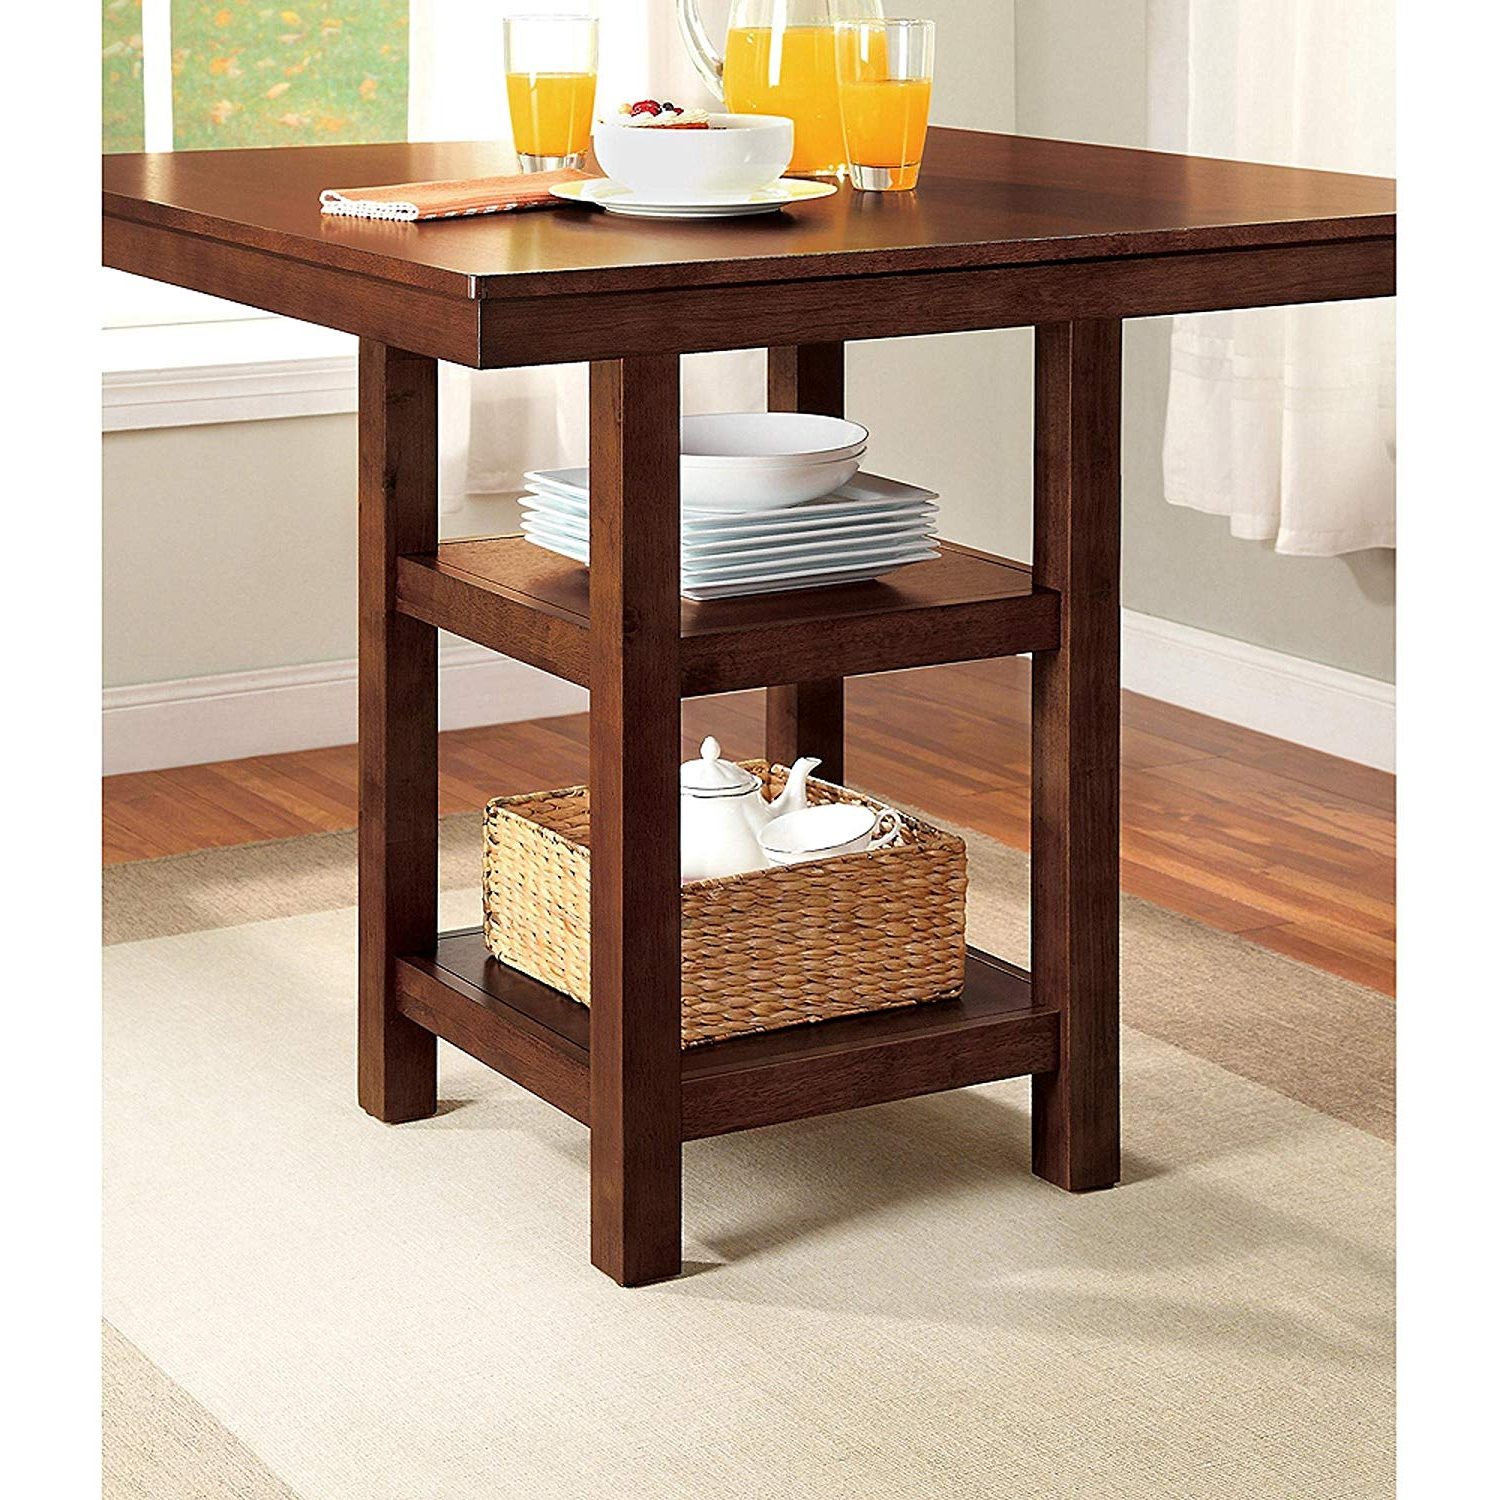 Denzel 5 Piece Counter Height Breakfast Nook Dining Sets Pertaining To Preferred Amazon – 5 Piece Dalton Park Counter Height Dining Set, Mocha (Gallery 21 of 25)